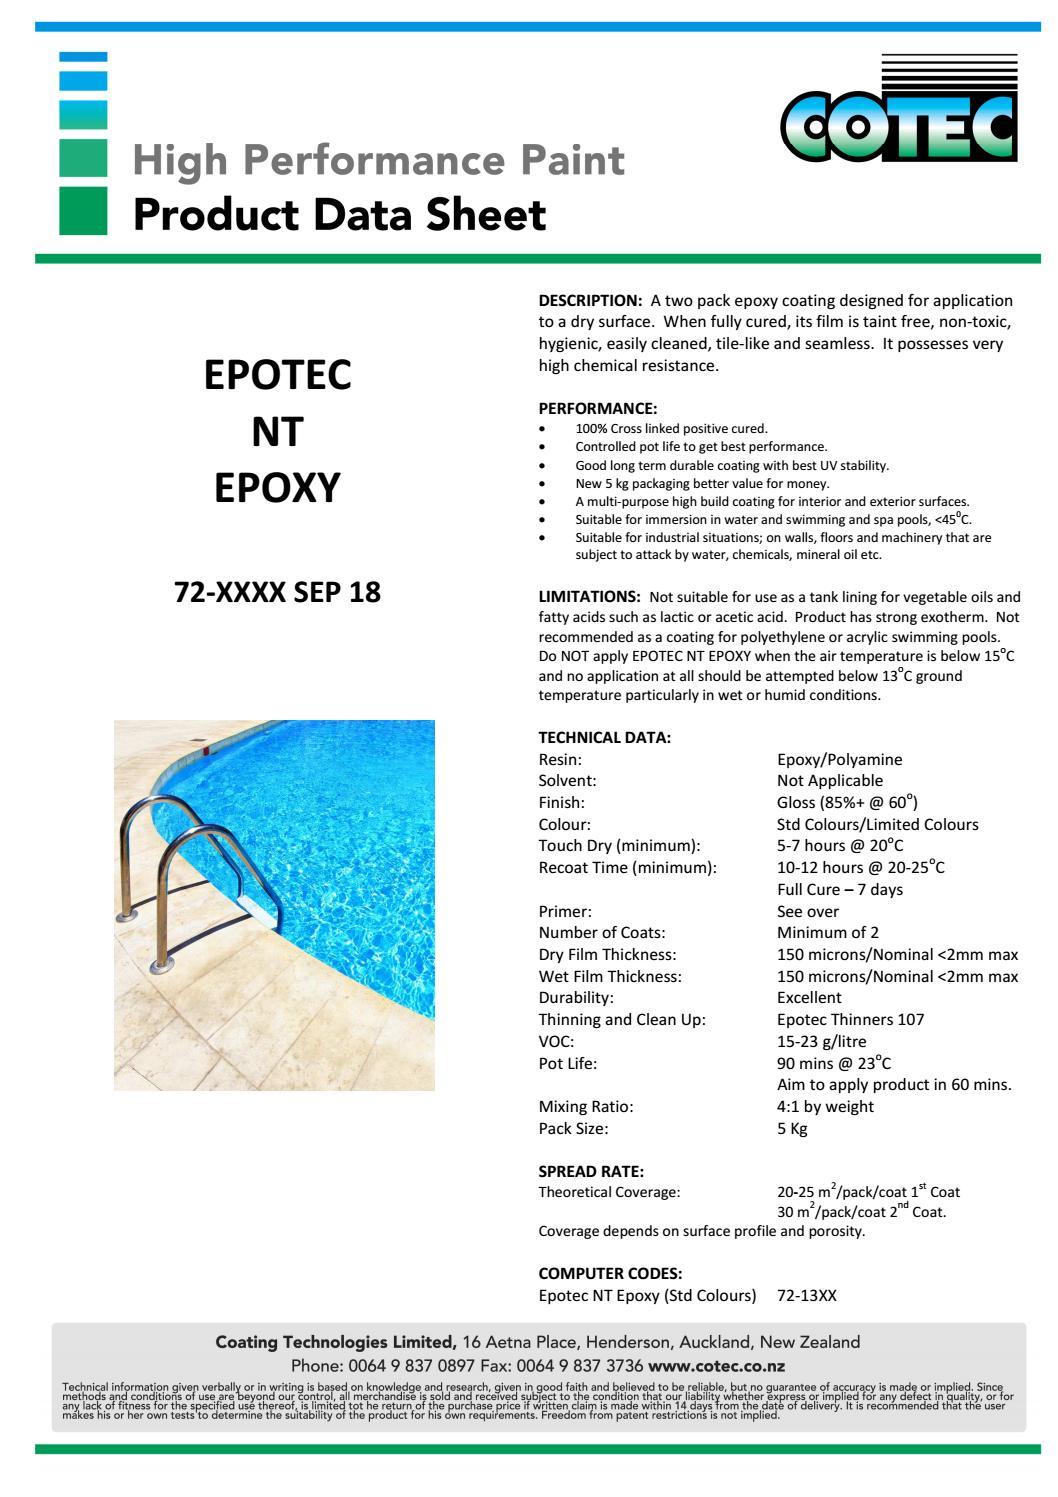 Epotec NT Epoxy Pool Paint – The Fibreglass Shop